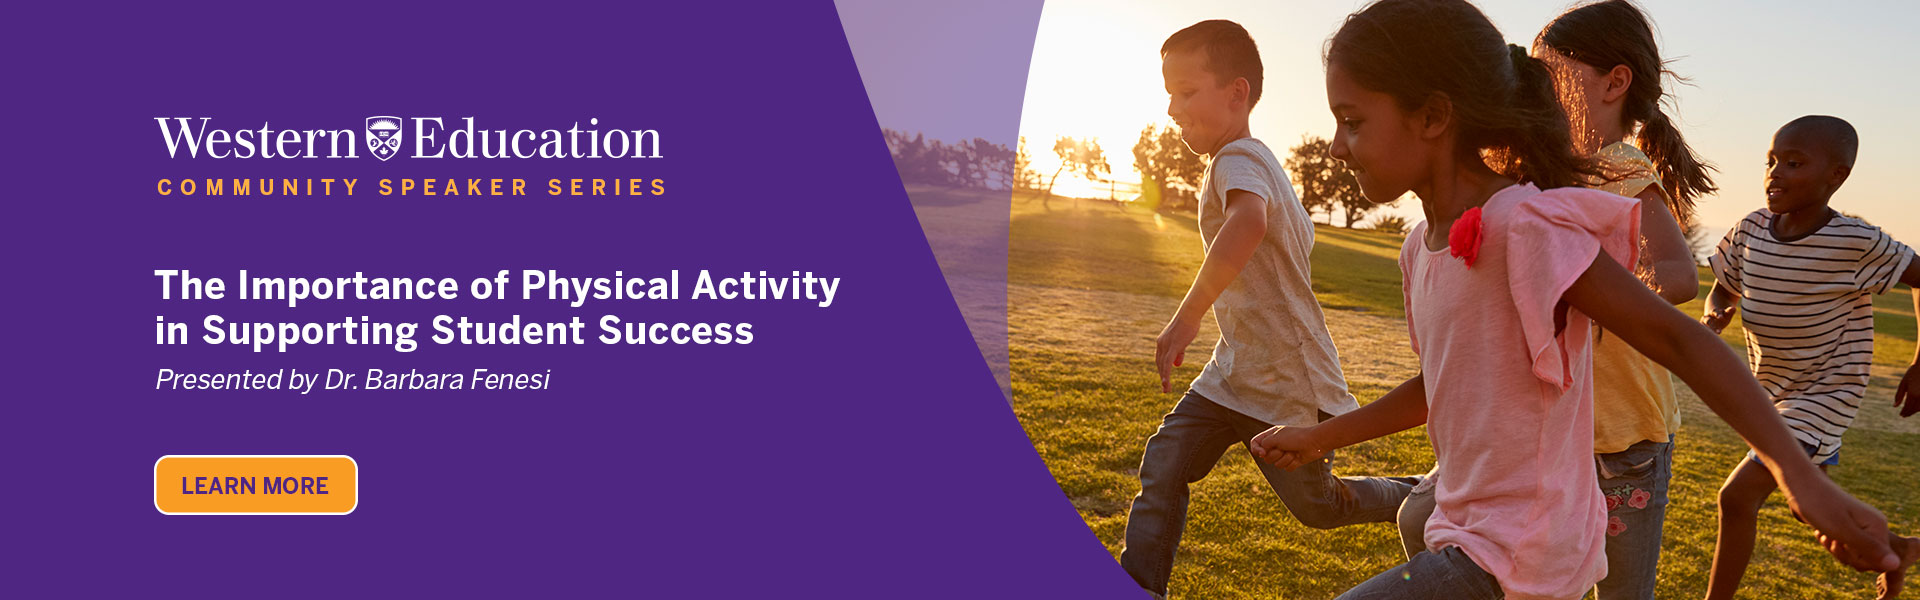 Community Speaker Series - The Importance of Physical Activity in Supporting Student Success